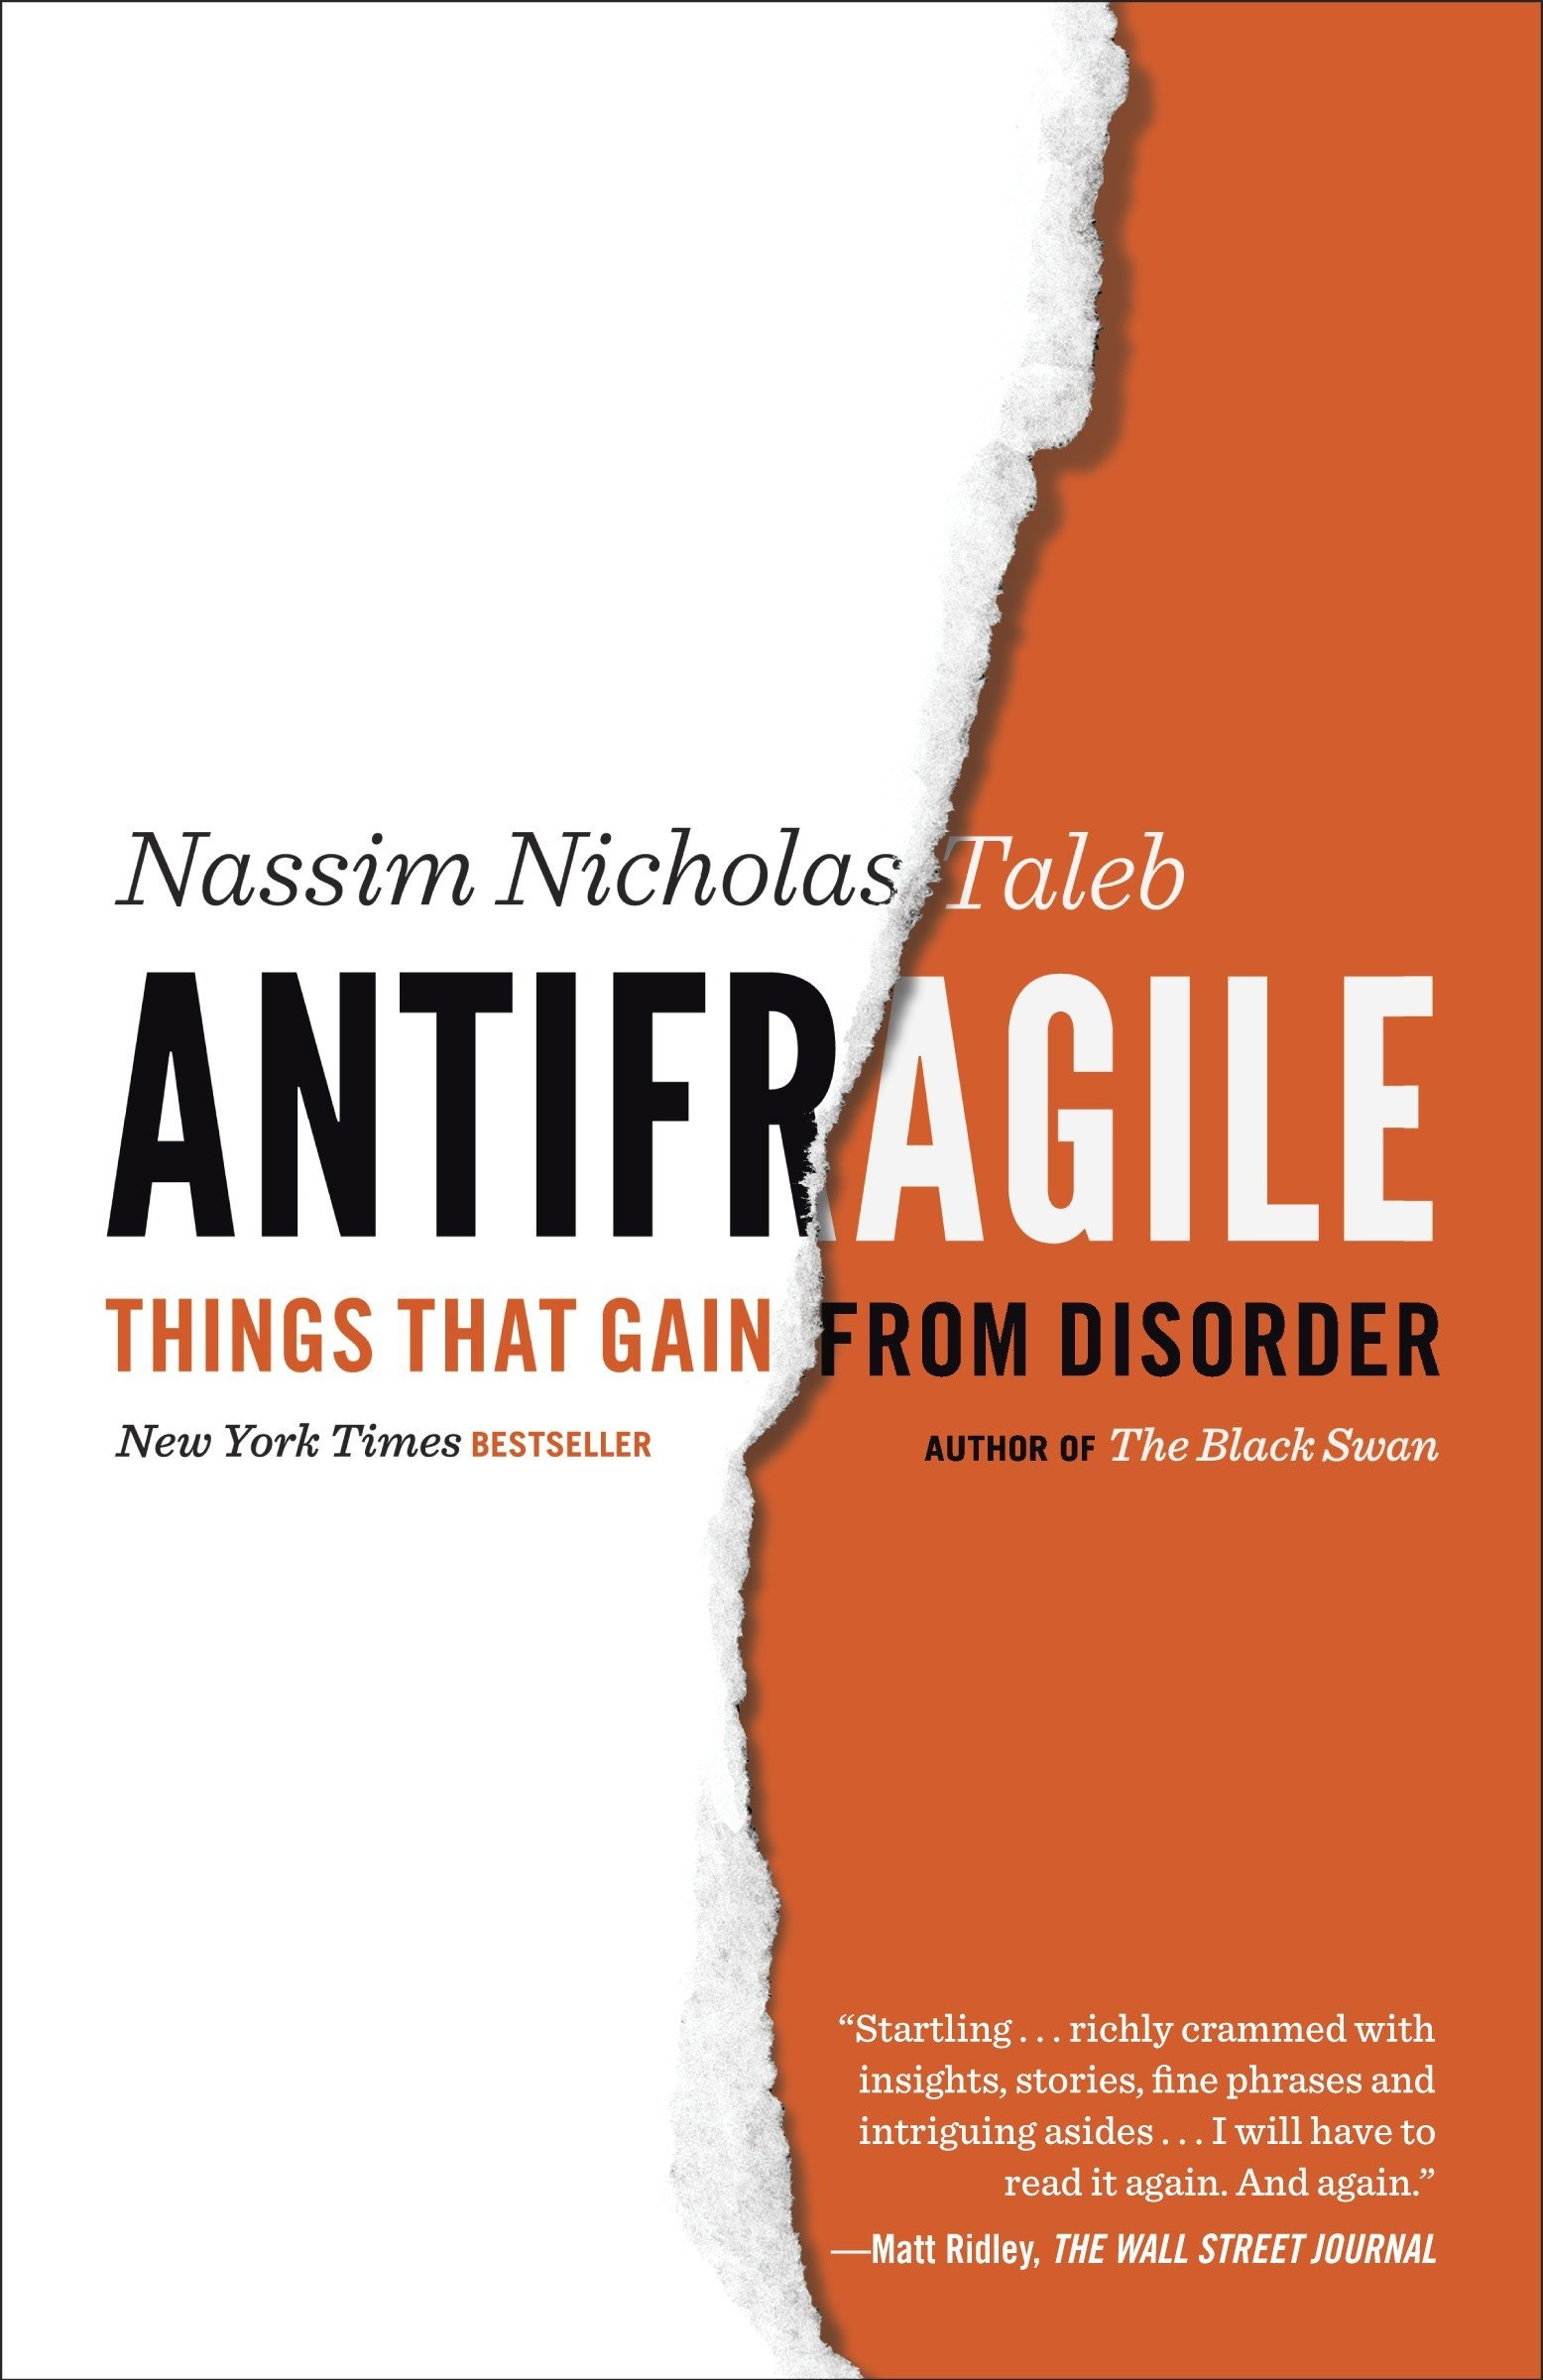 Antifragile by Nassim Nicholas Taleb book cover.